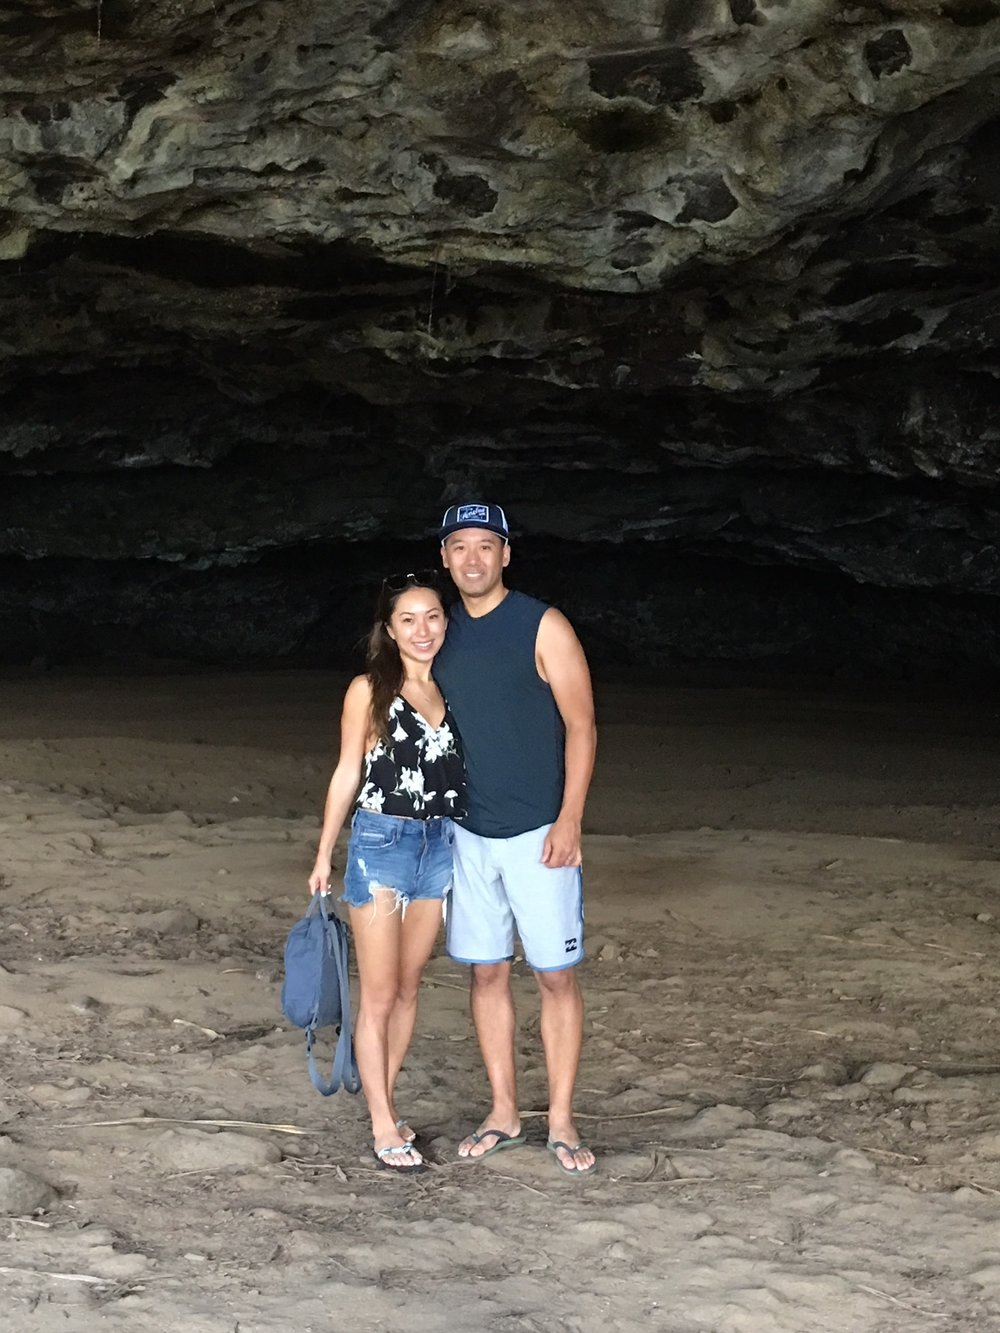 Maniniholo Dry Cave - Explore the caves on the way to Ke'e Beach.